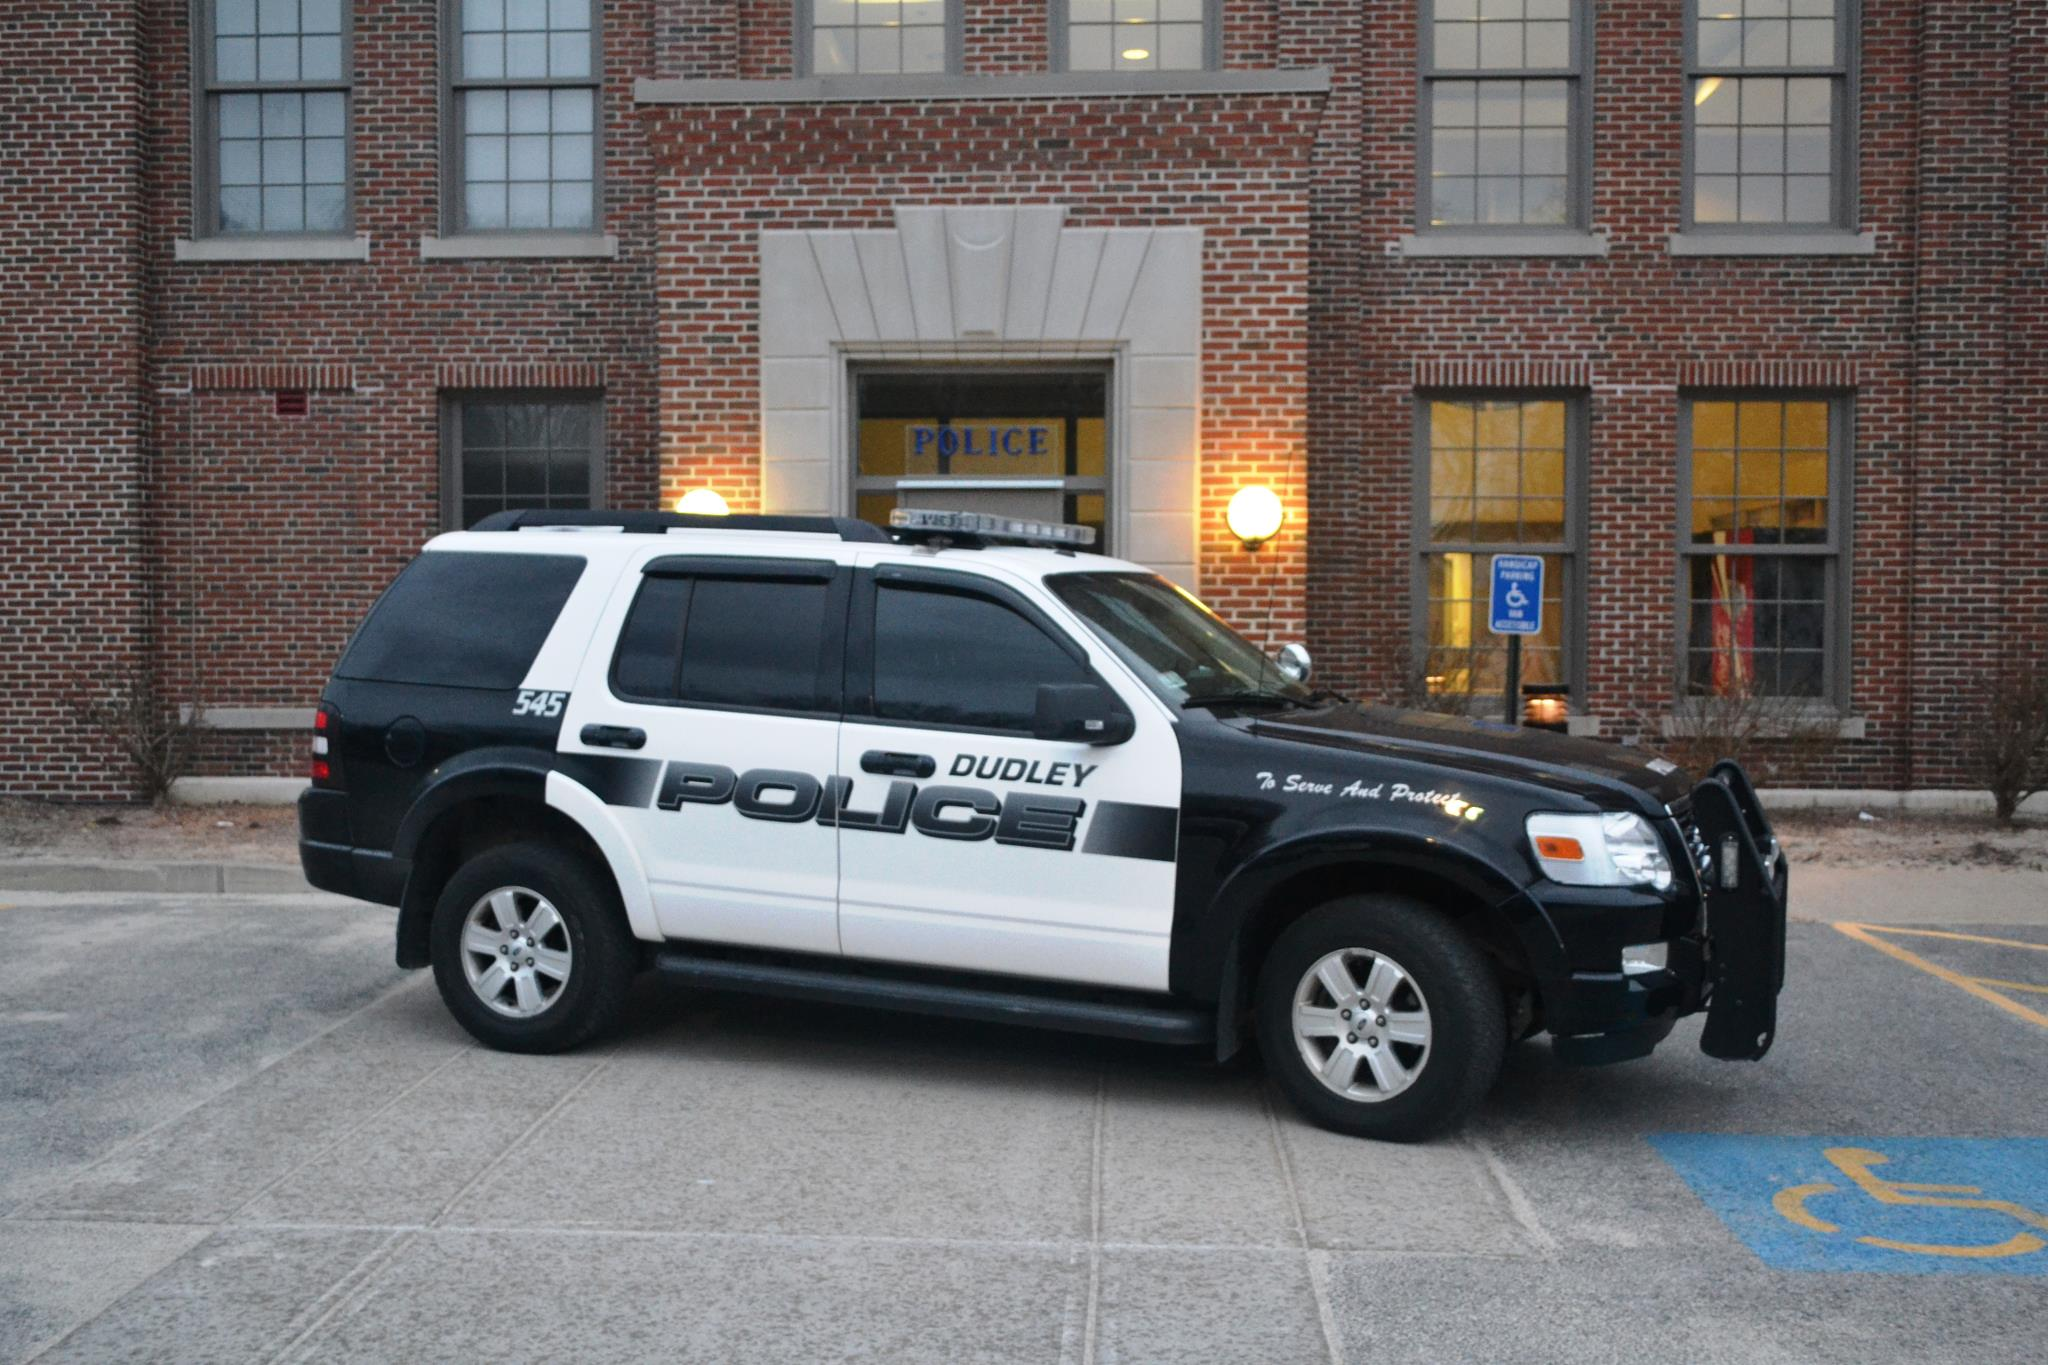 Dudley District Court briefly shuttered after bomb threat